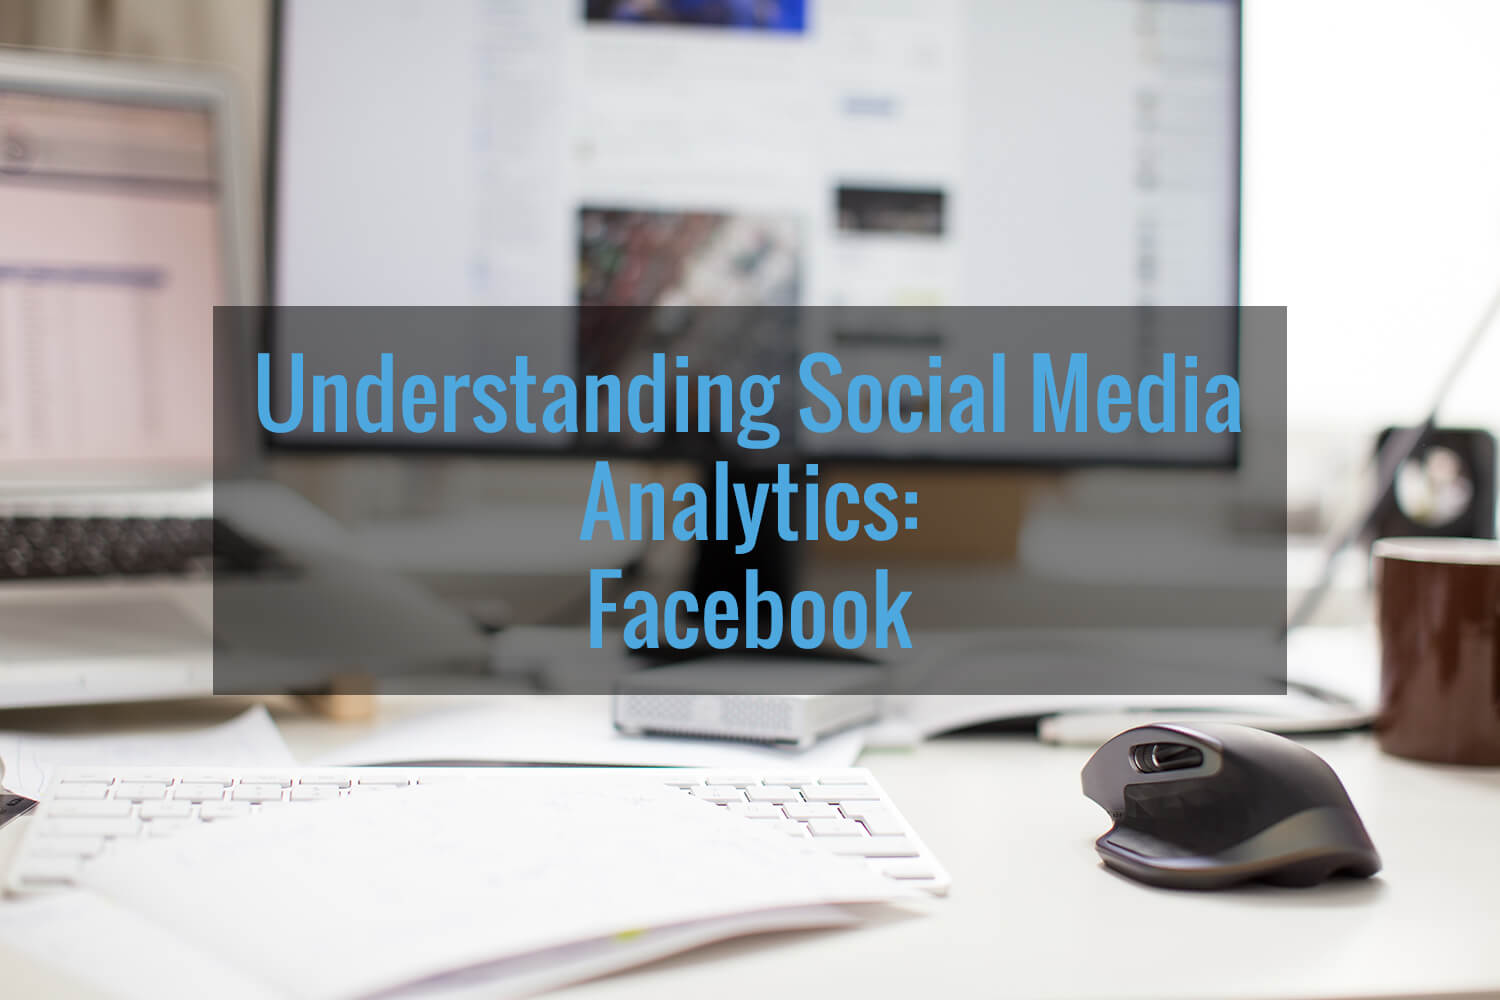 Understanding Social Media Analytics: Facebook